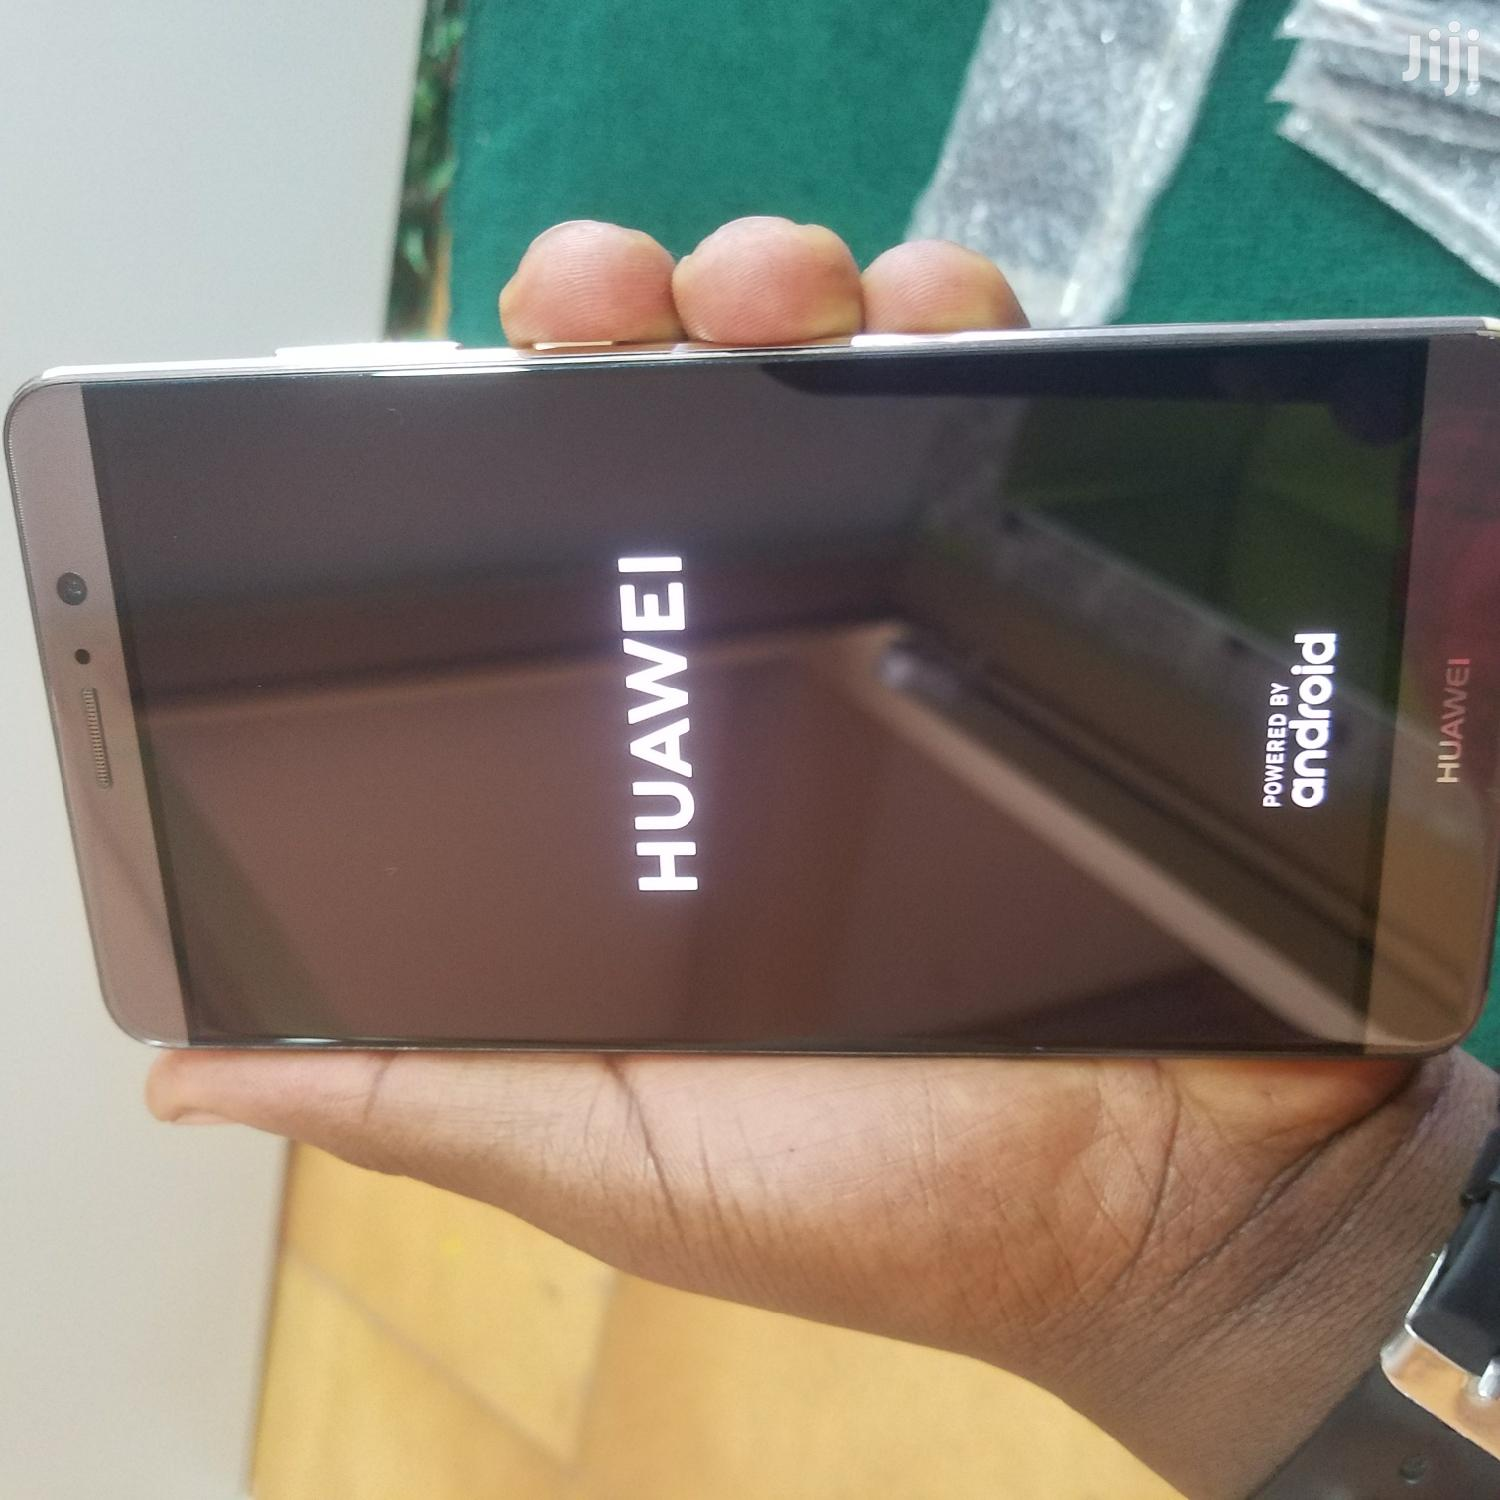 Huawei Mate 9 Pro 64 GB Gold | Mobile Phones for sale in Kampala, Central Region, Uganda